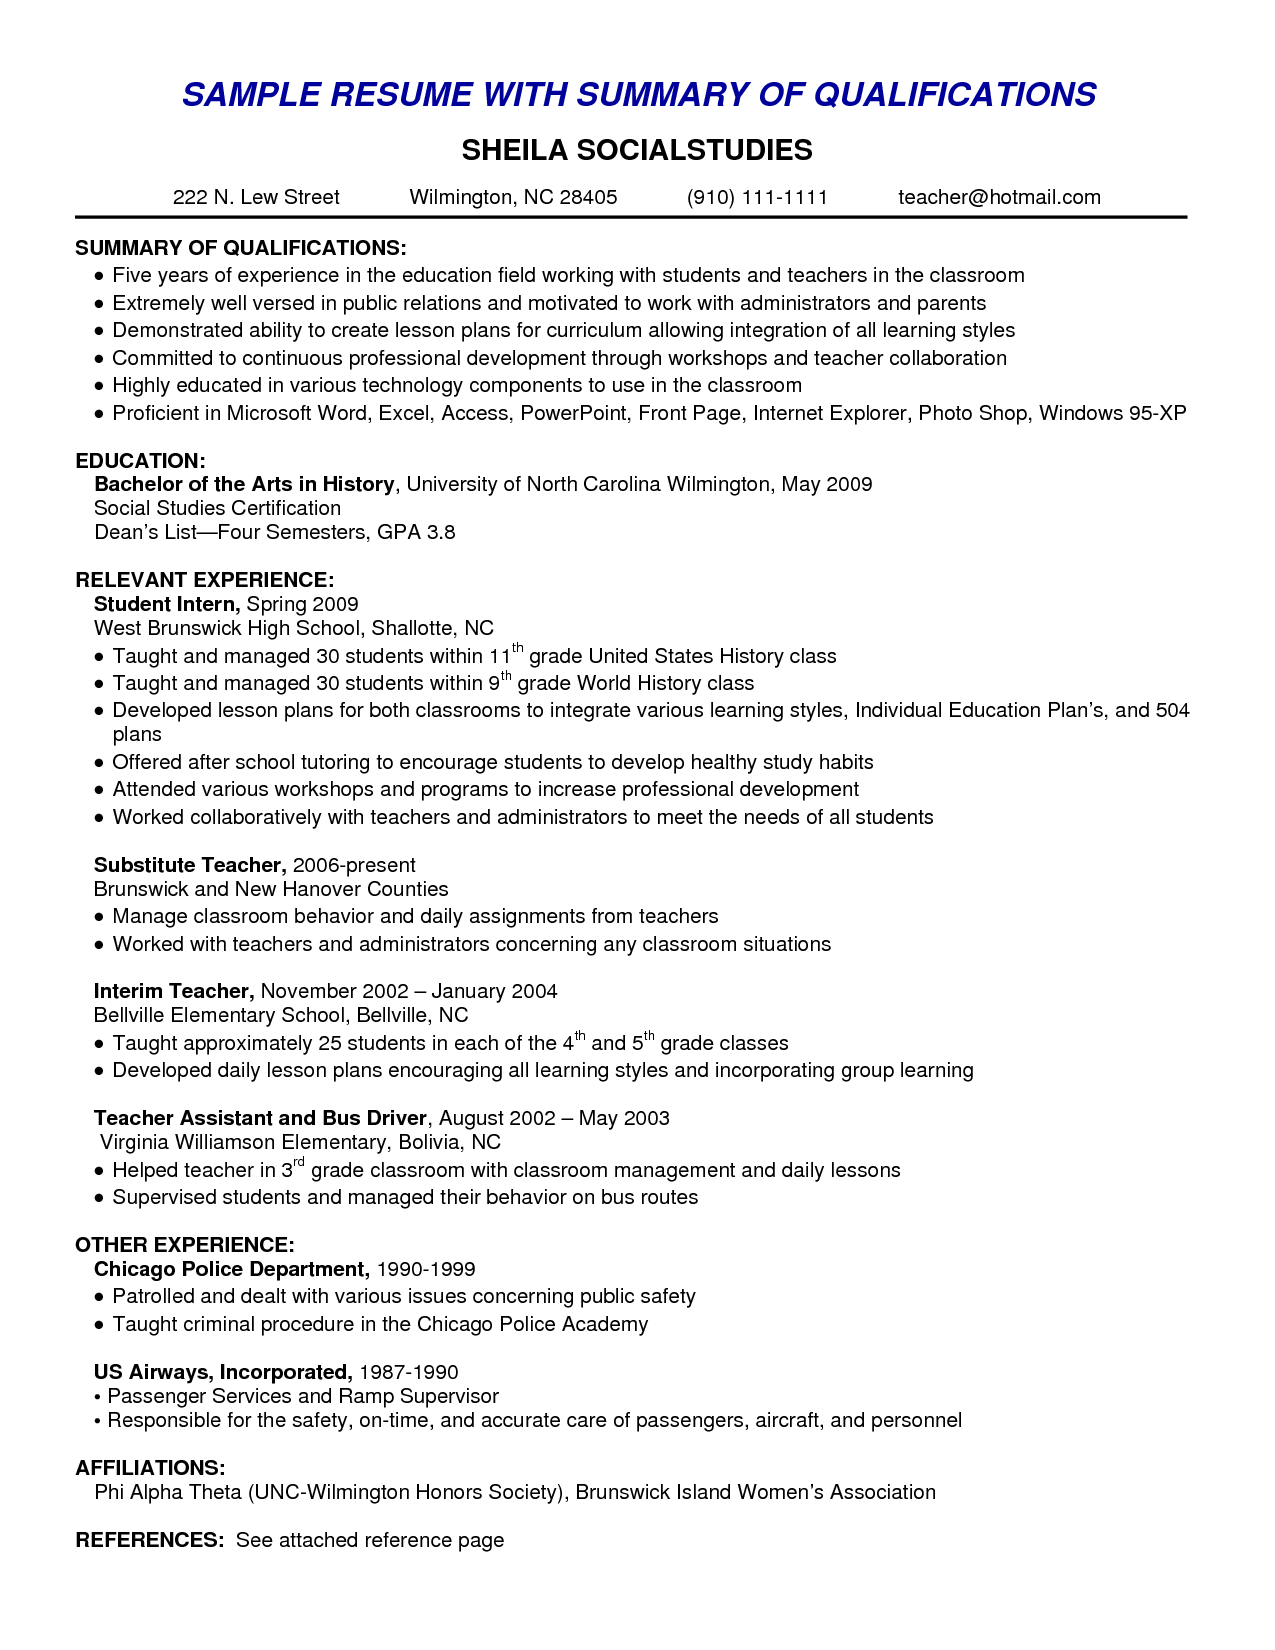 Professional Resumes Template 9 Professional Summary Examples Samplebusinessresume